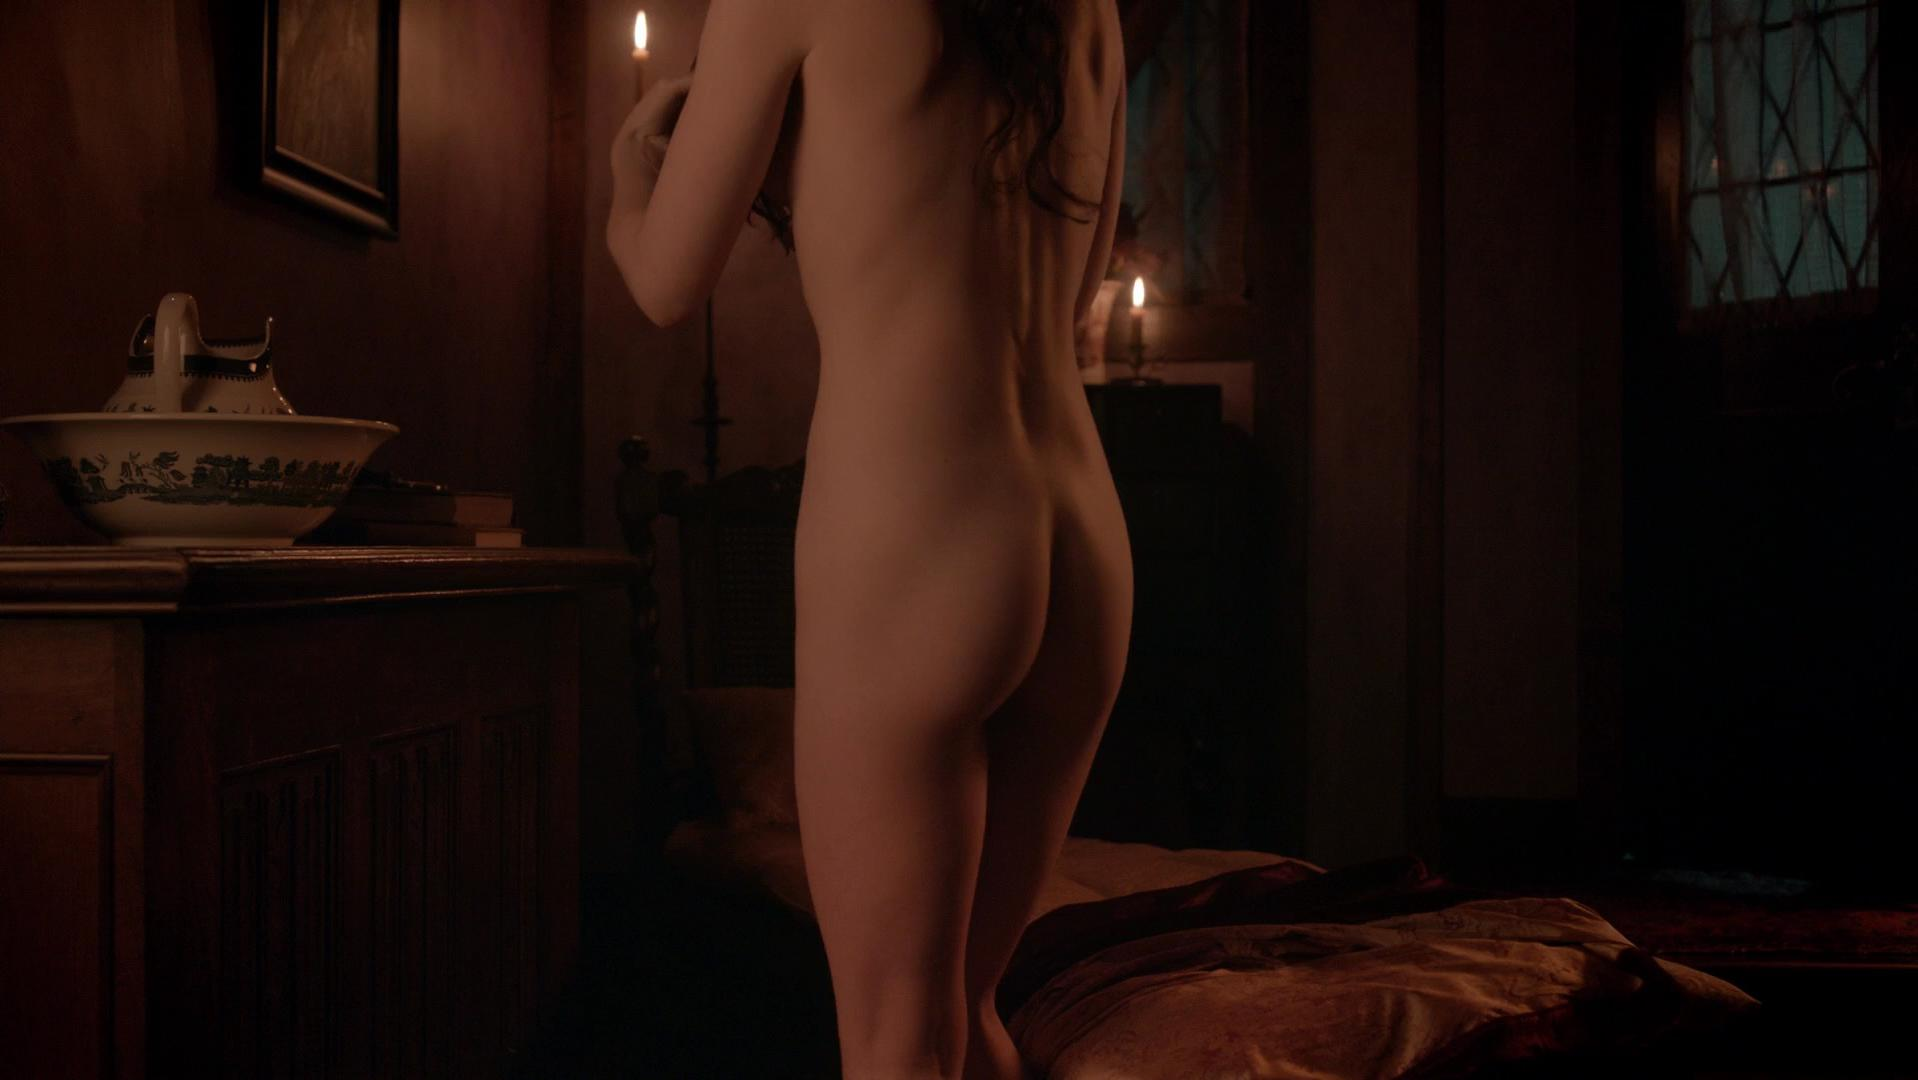 Janet Montgomery nude, Azure Parsons nude - Salem s01e01 (2014)